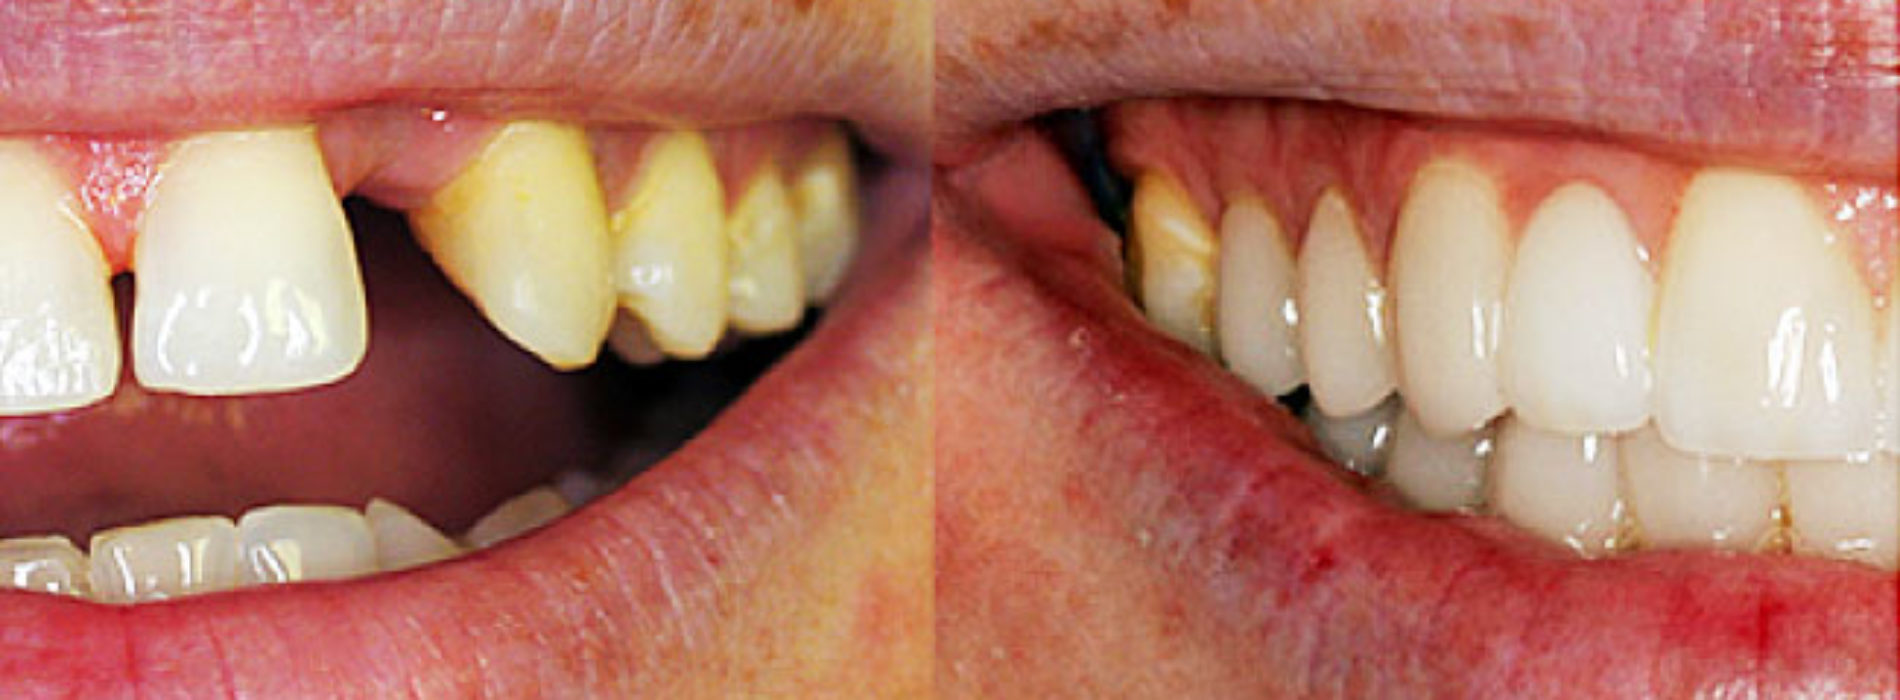 Get the cosmetic dental procedure you need